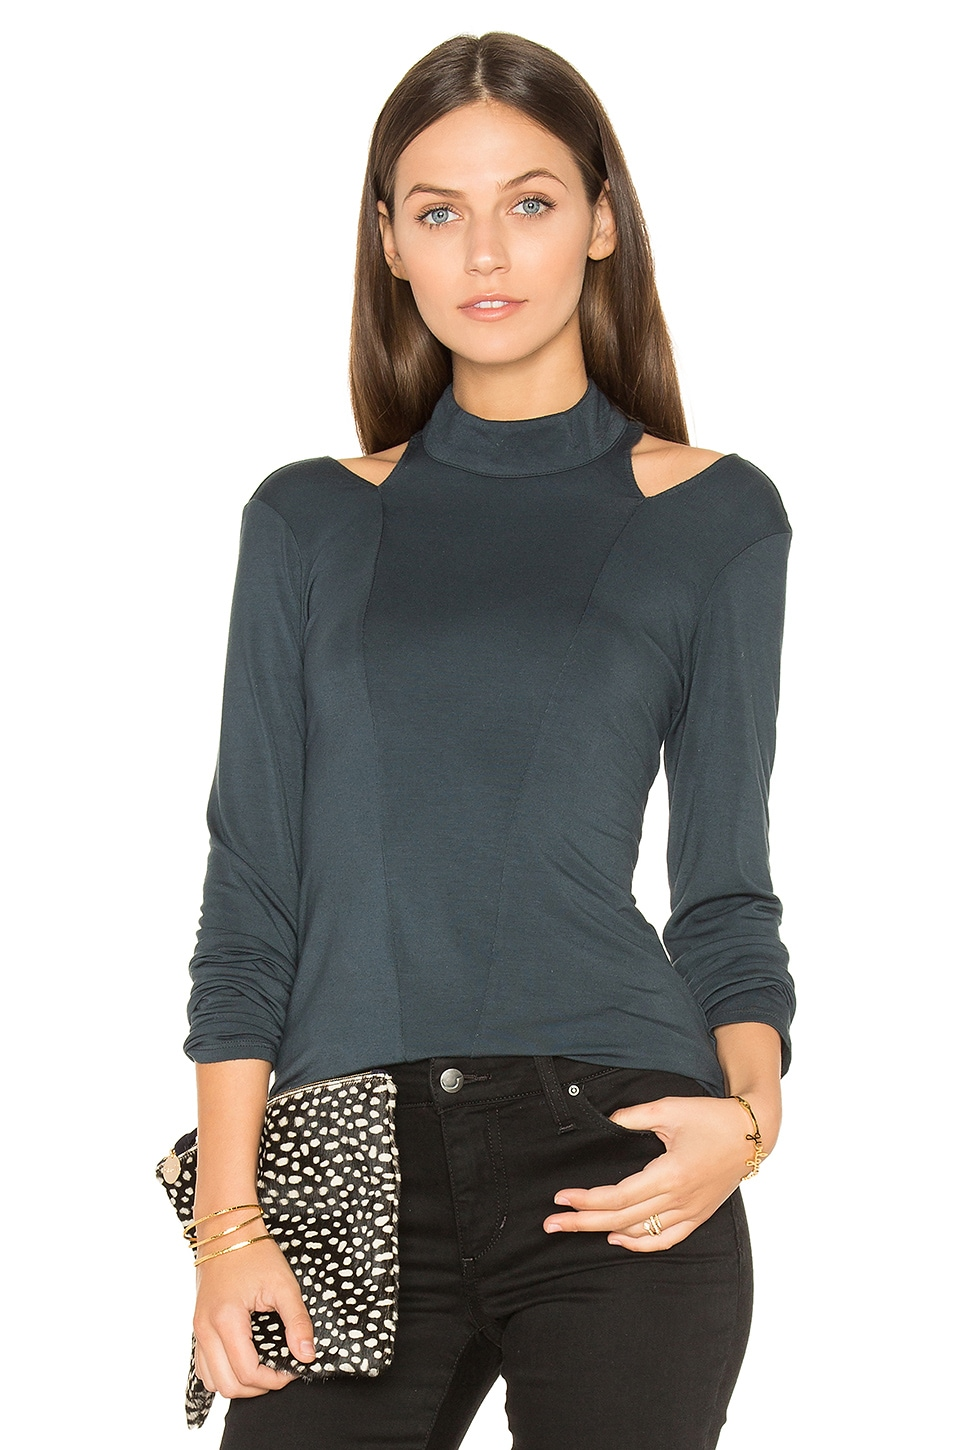 Cutout Turtleneck Top by krisa